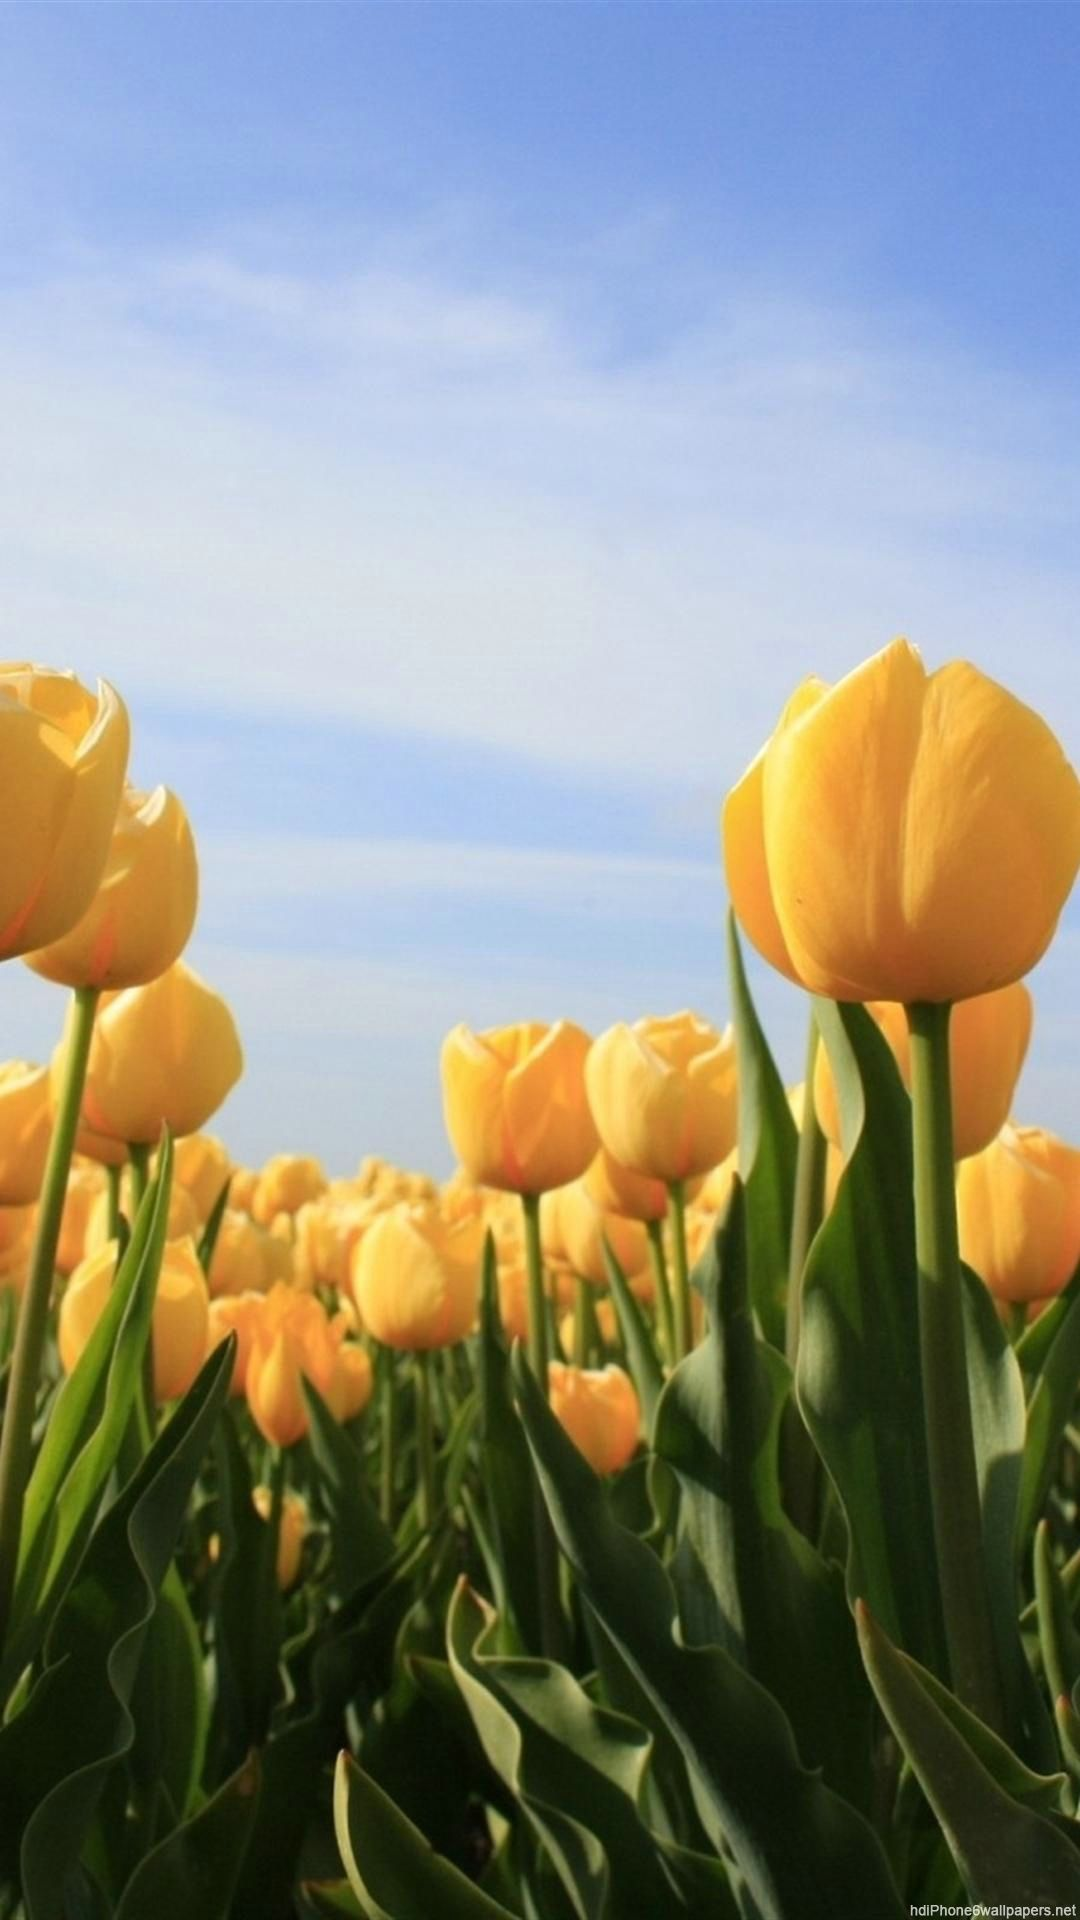 Flowers sun tulip sky yellow Iphone wallpaper yellow